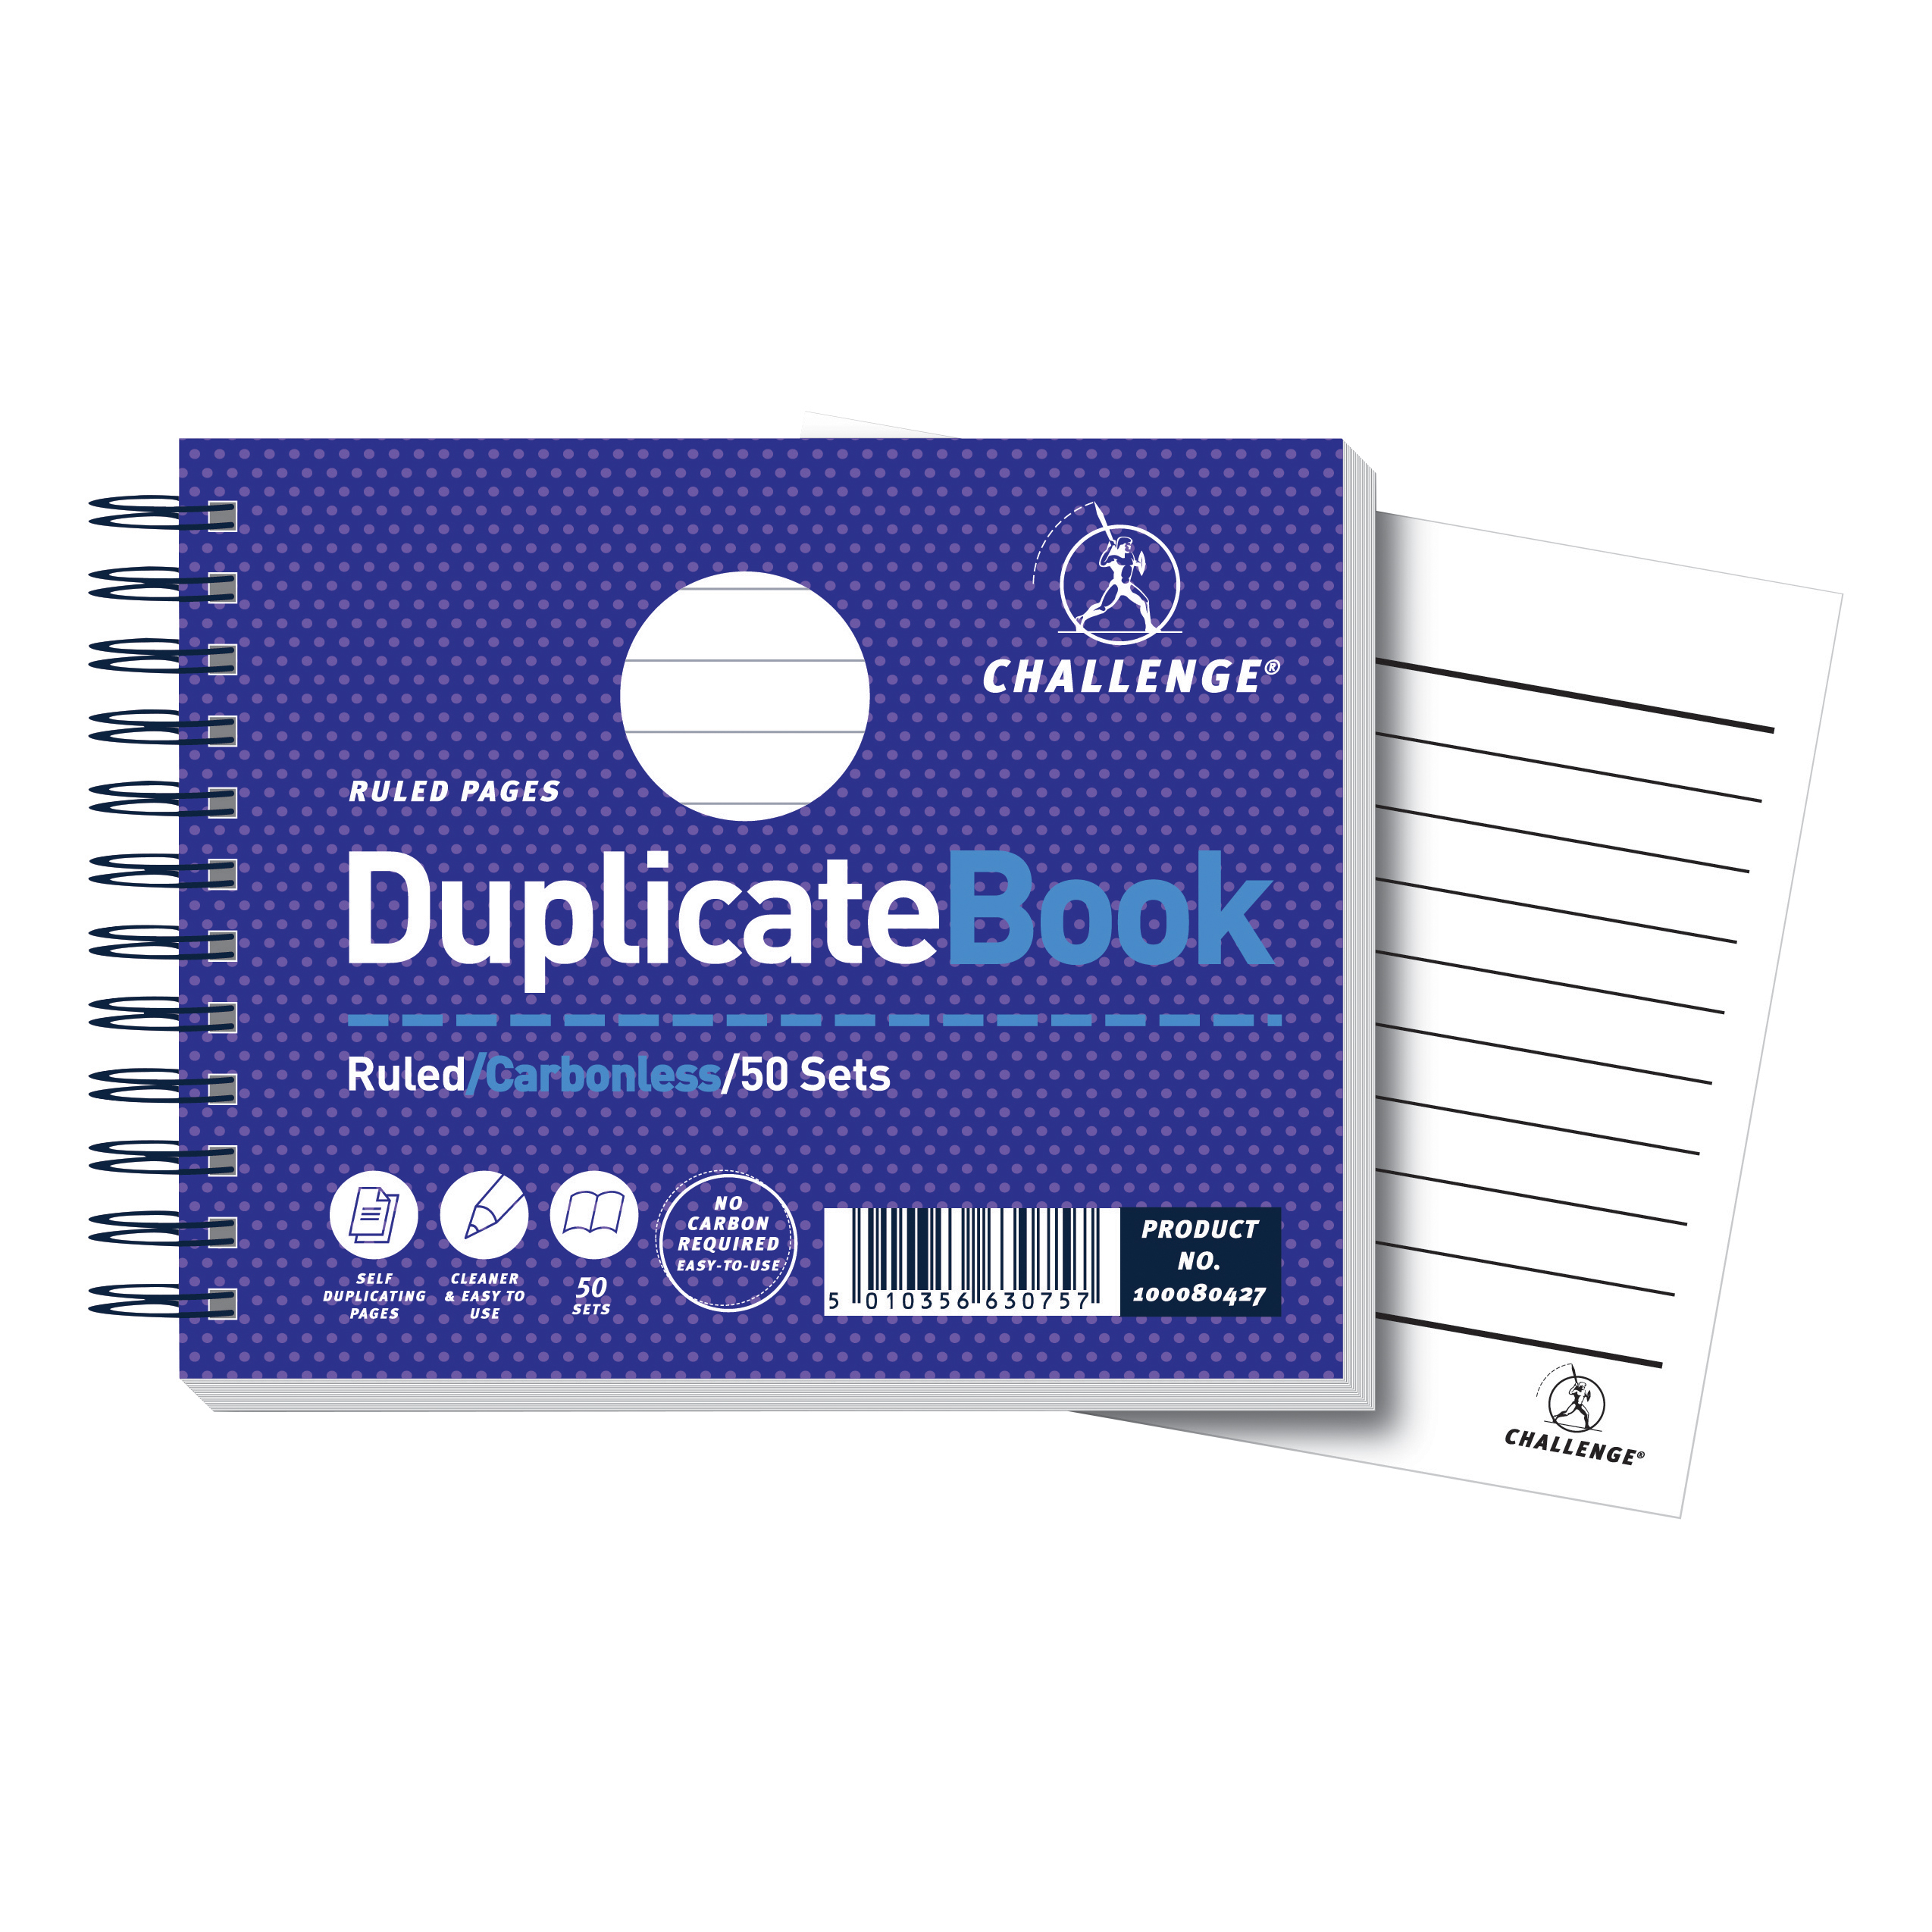 Duplicate Challenge Duplicate Book Carbonless Wirebound Ruled 50 Sets 105x130mm Ref 100080427 Pack 5